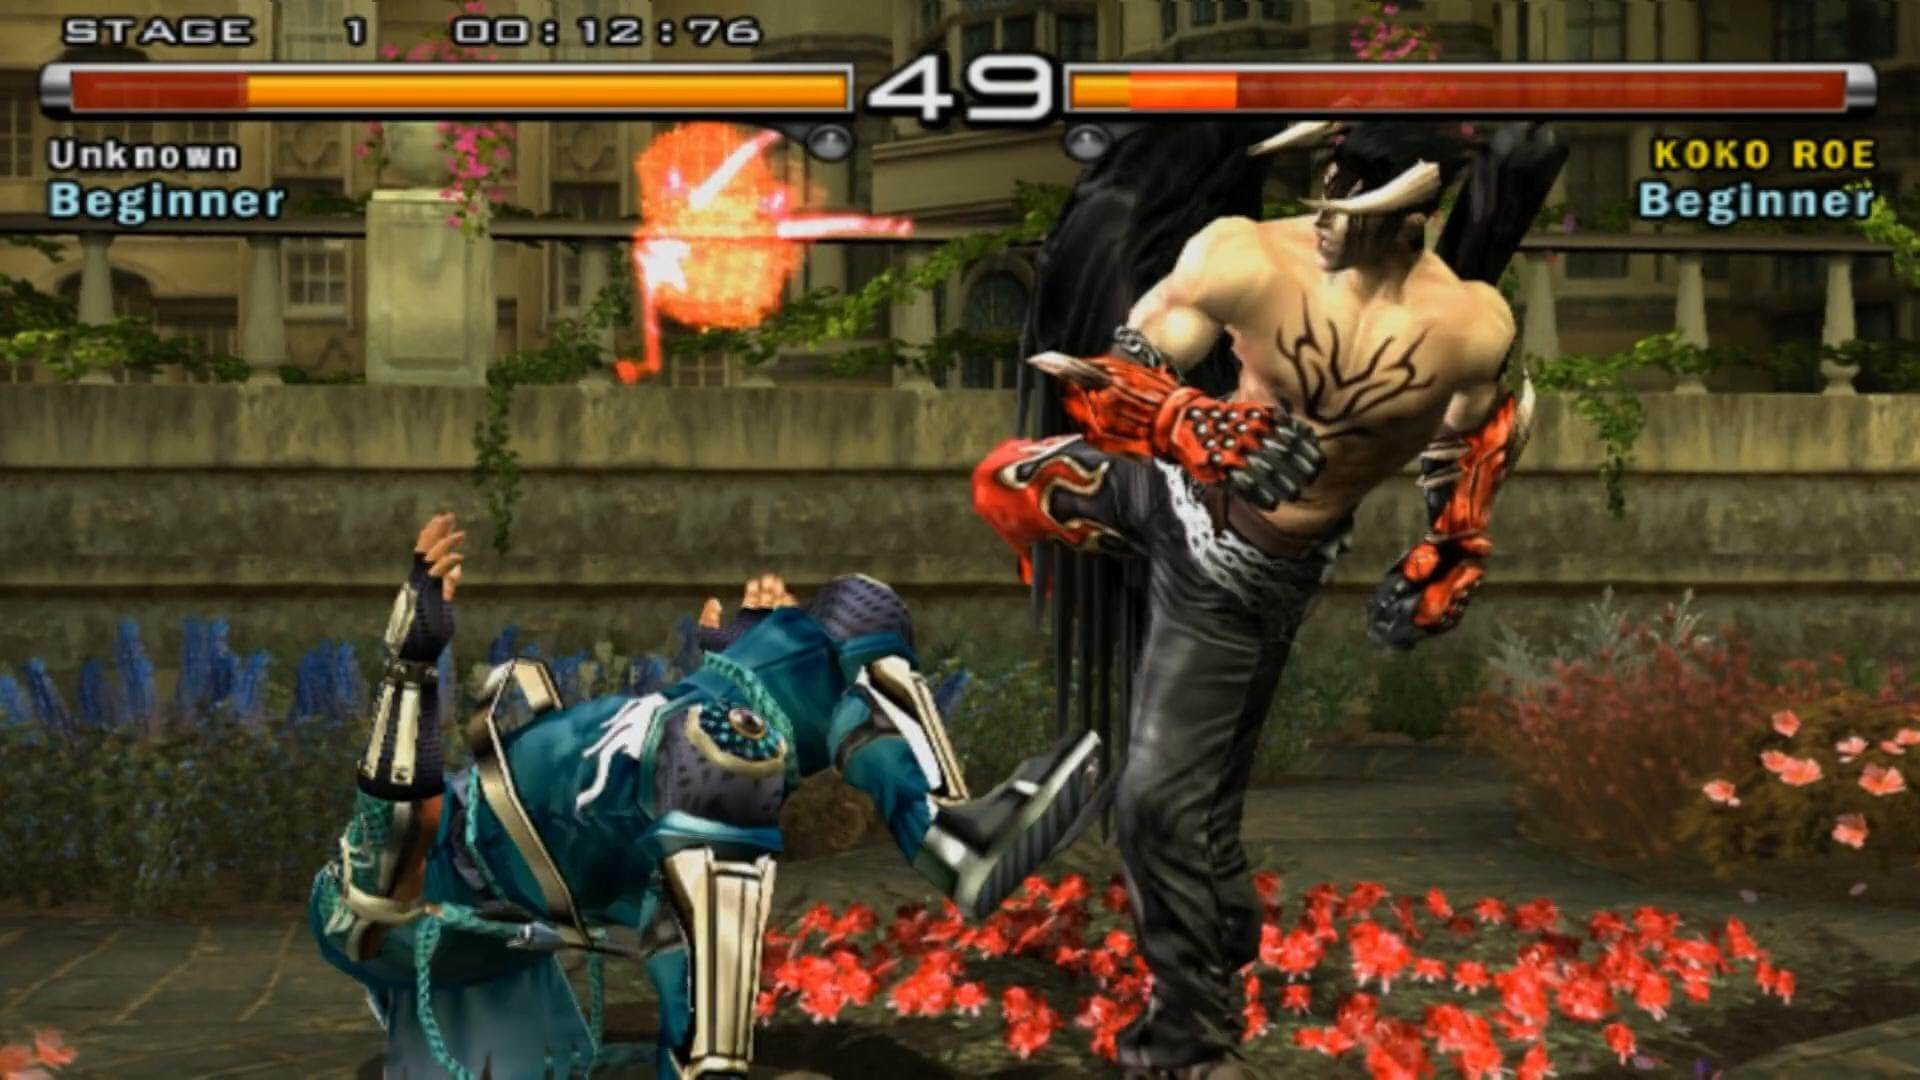 Download xp iso tool windows 10